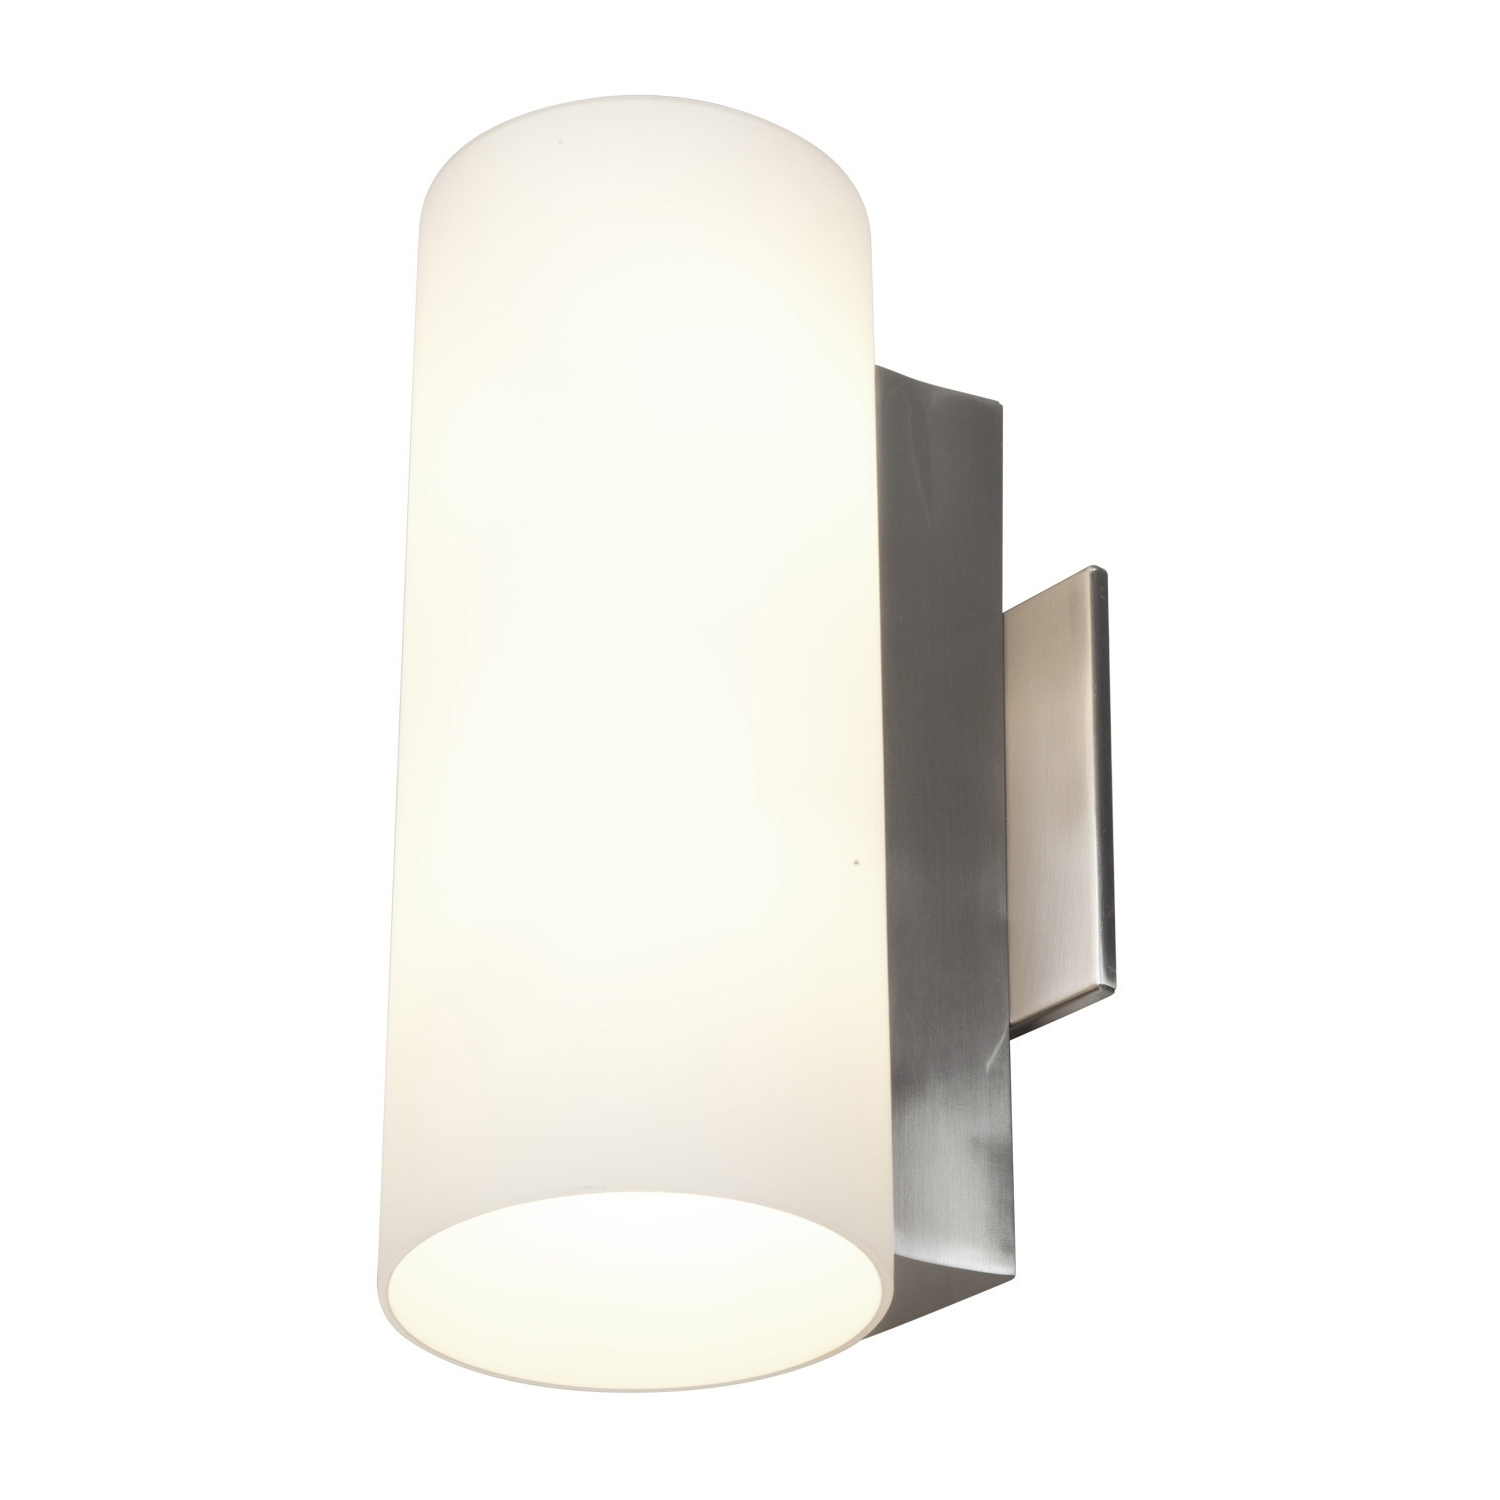 Well Known Cheap Outdoor Wall Lighting Fixtures Regarding Stainless Steel Wall Mounted Sconce Light Fixtures With White Lamp (View 7 of 20)